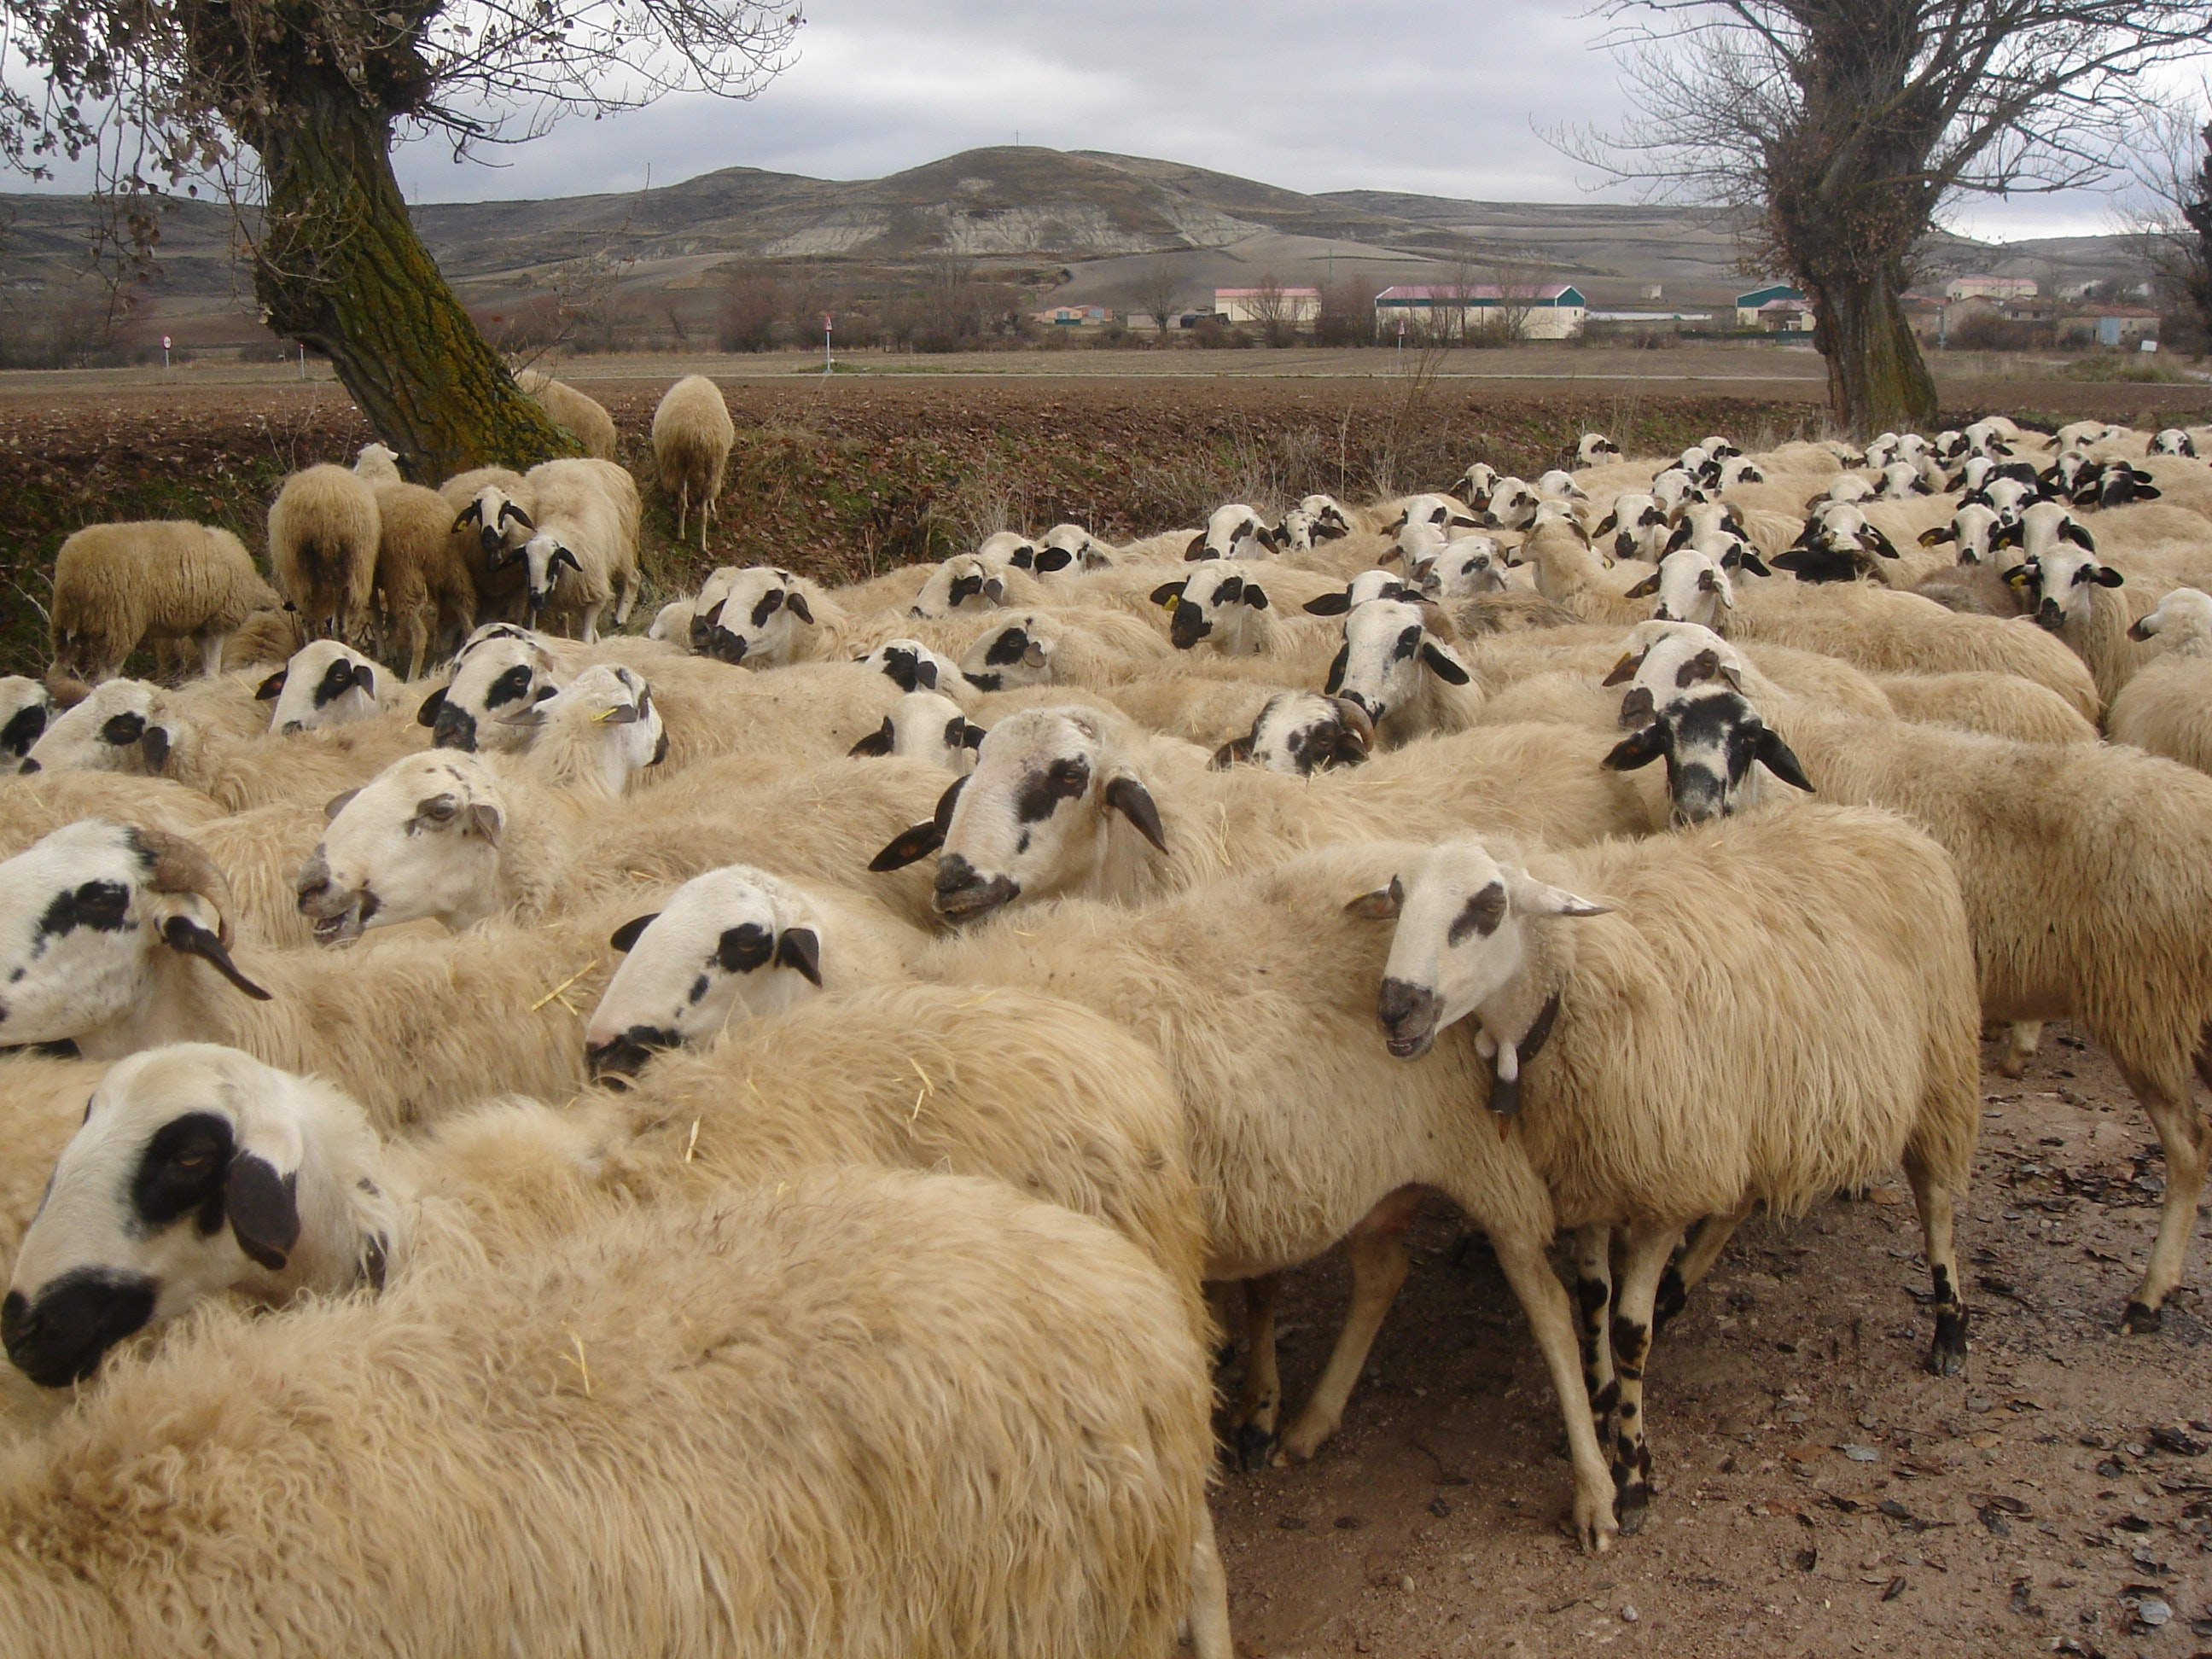 Herd of Sheep, Agriculture, Livestock, Trees, Sheep, HQ Photo